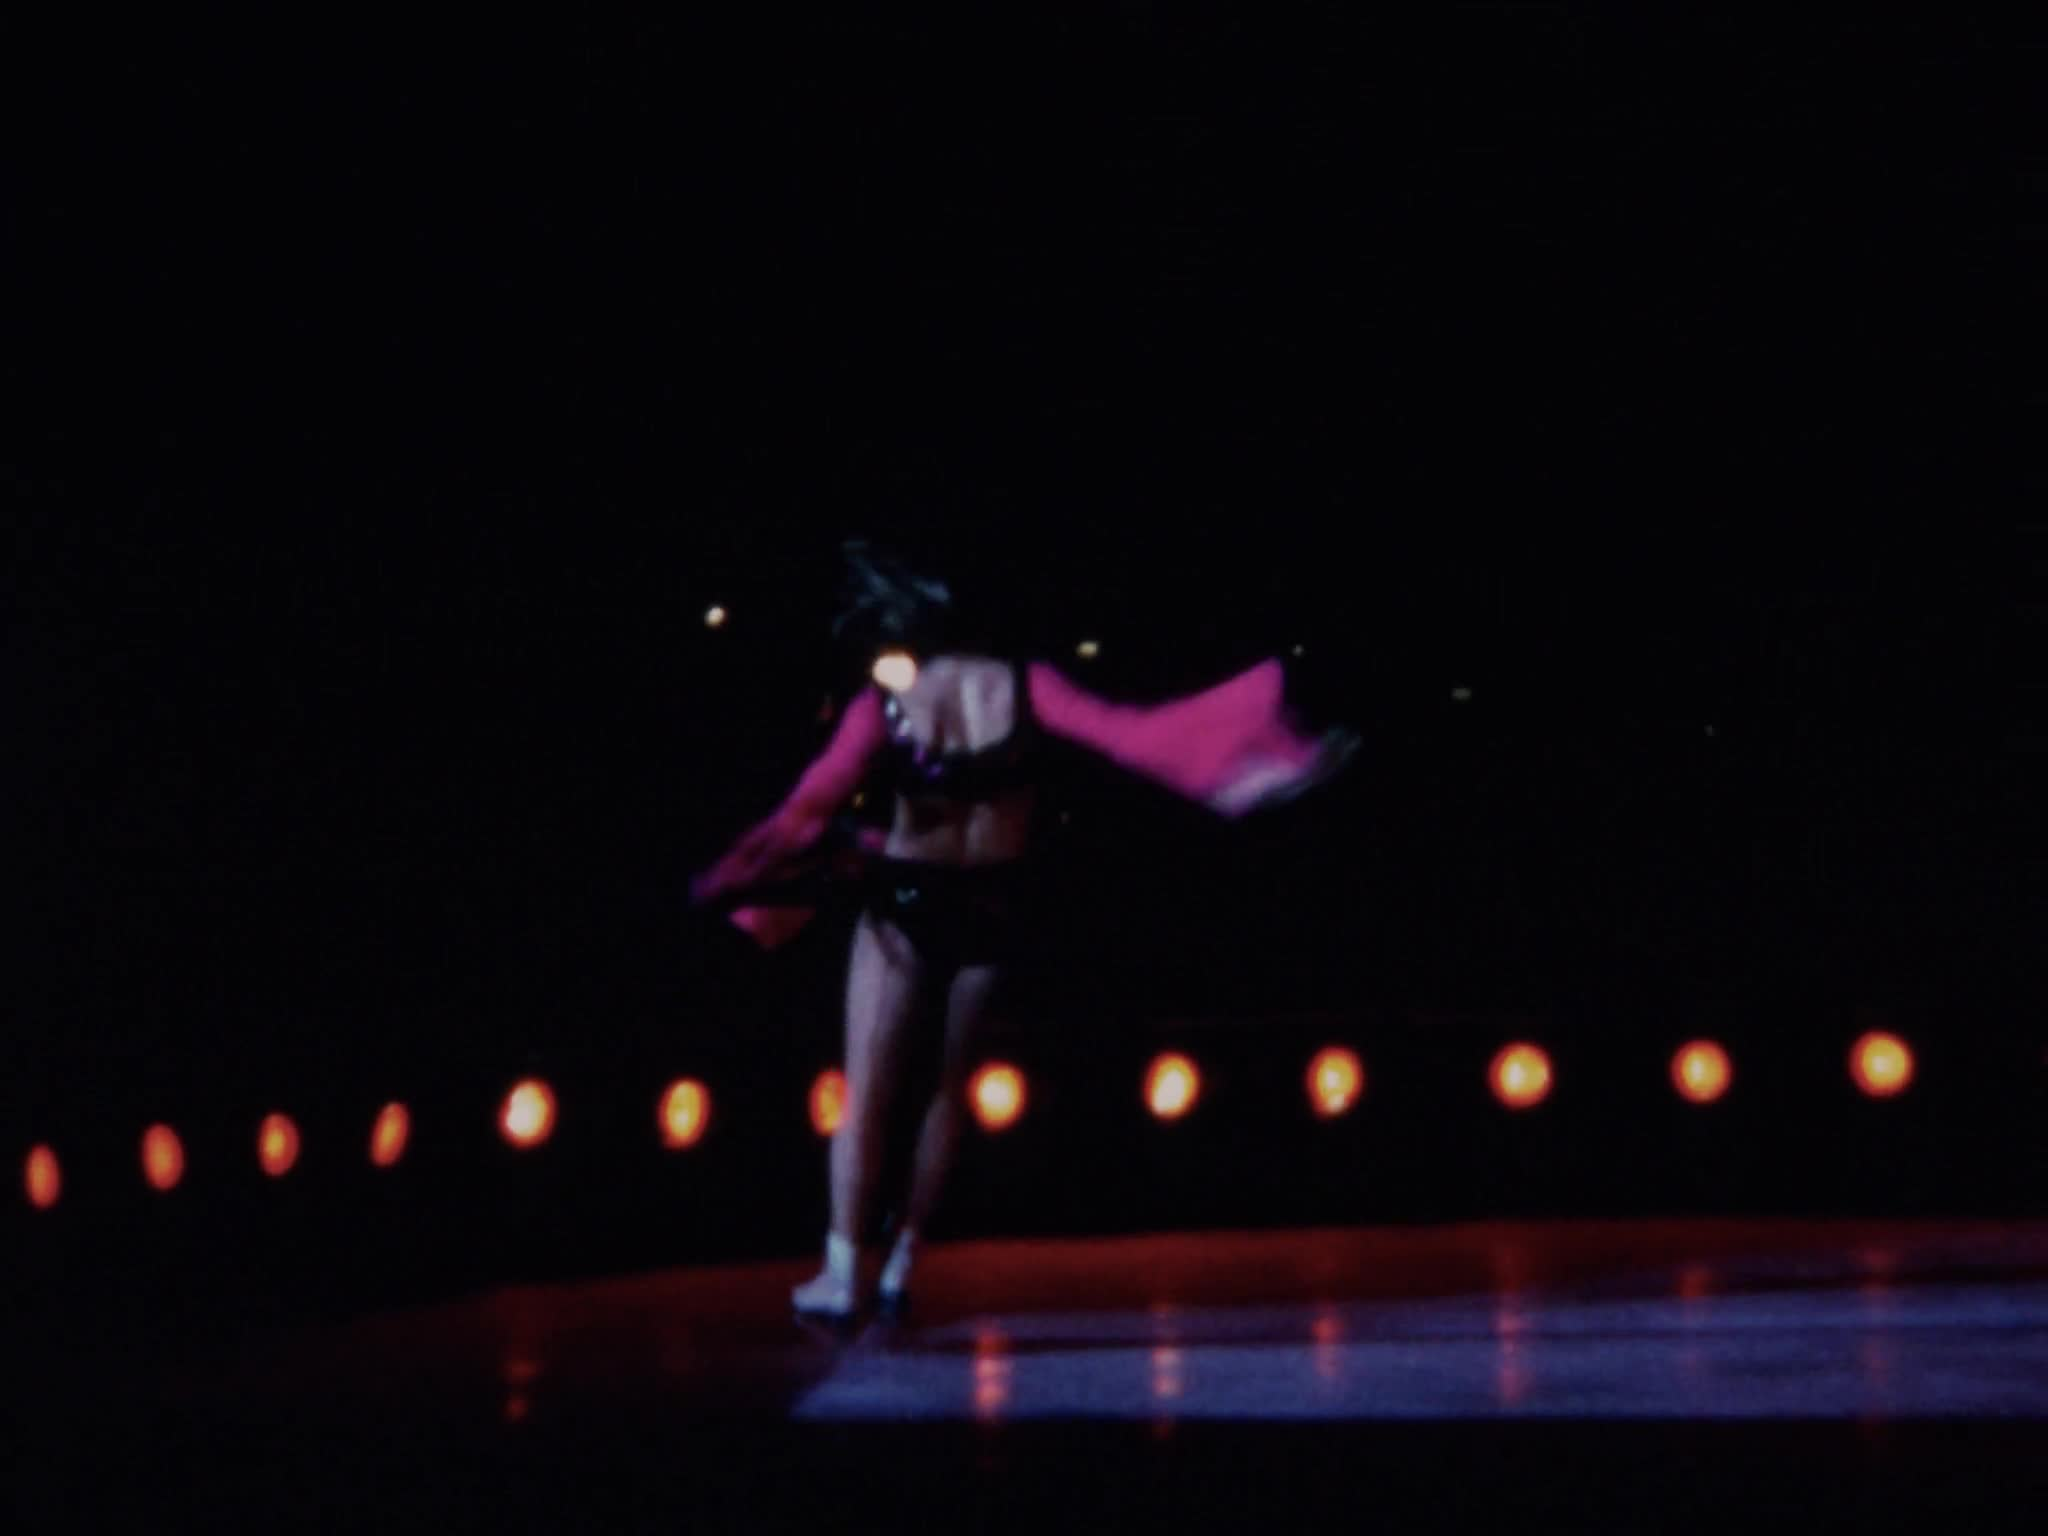 Ice Show in One Ring, Jugglers II, Five Man Comedy Musicians, Man and Girl Skaters